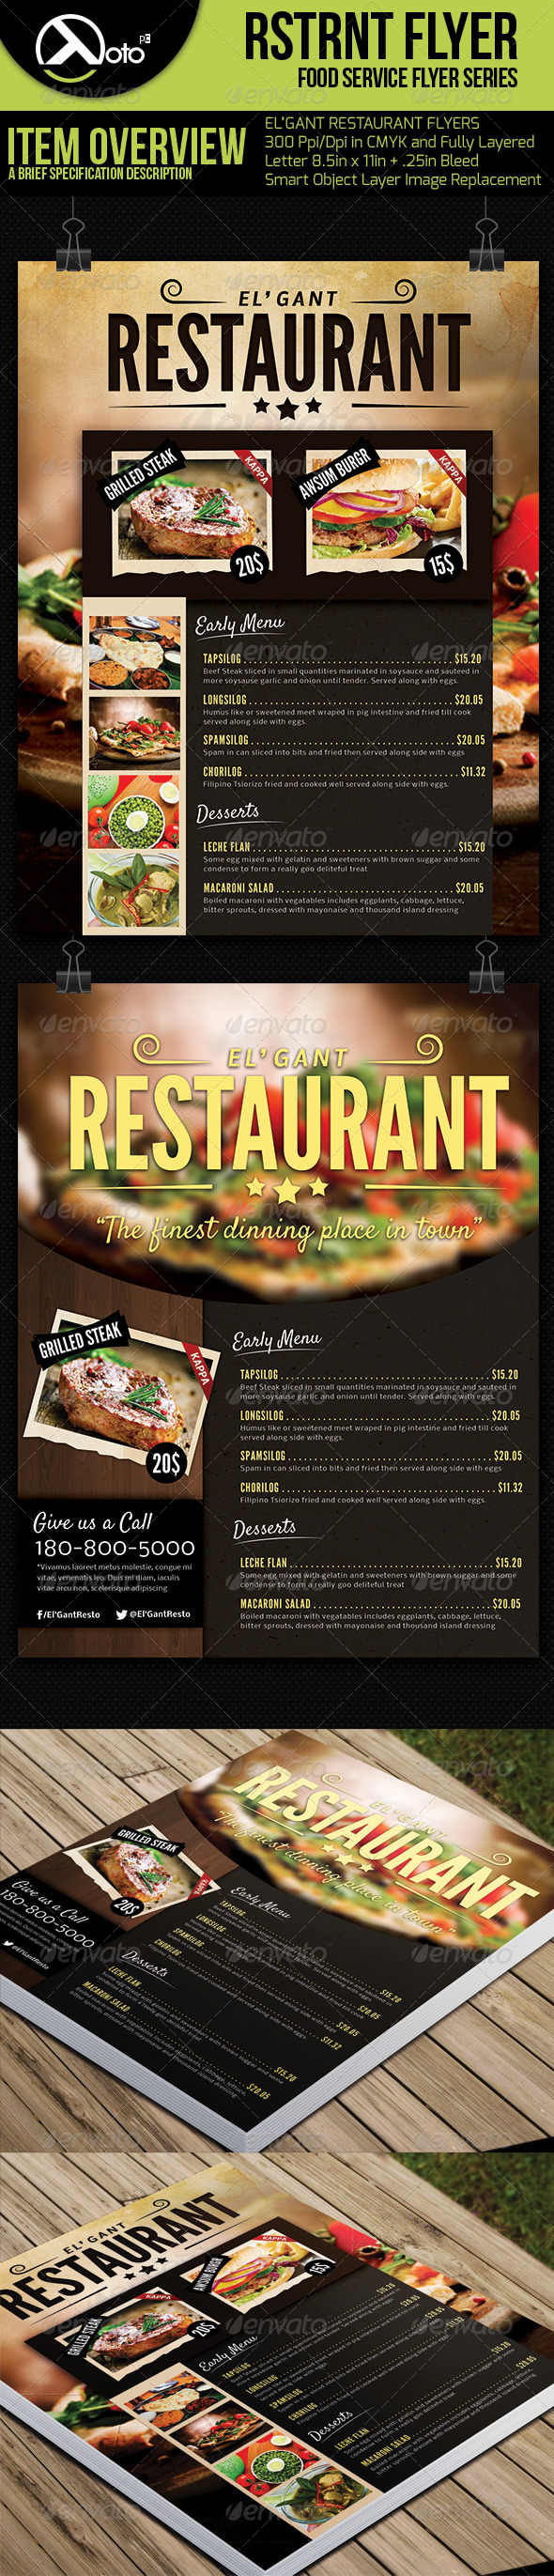 2 in 1 Restaurant Menu Flyers - Restaurant Flyers